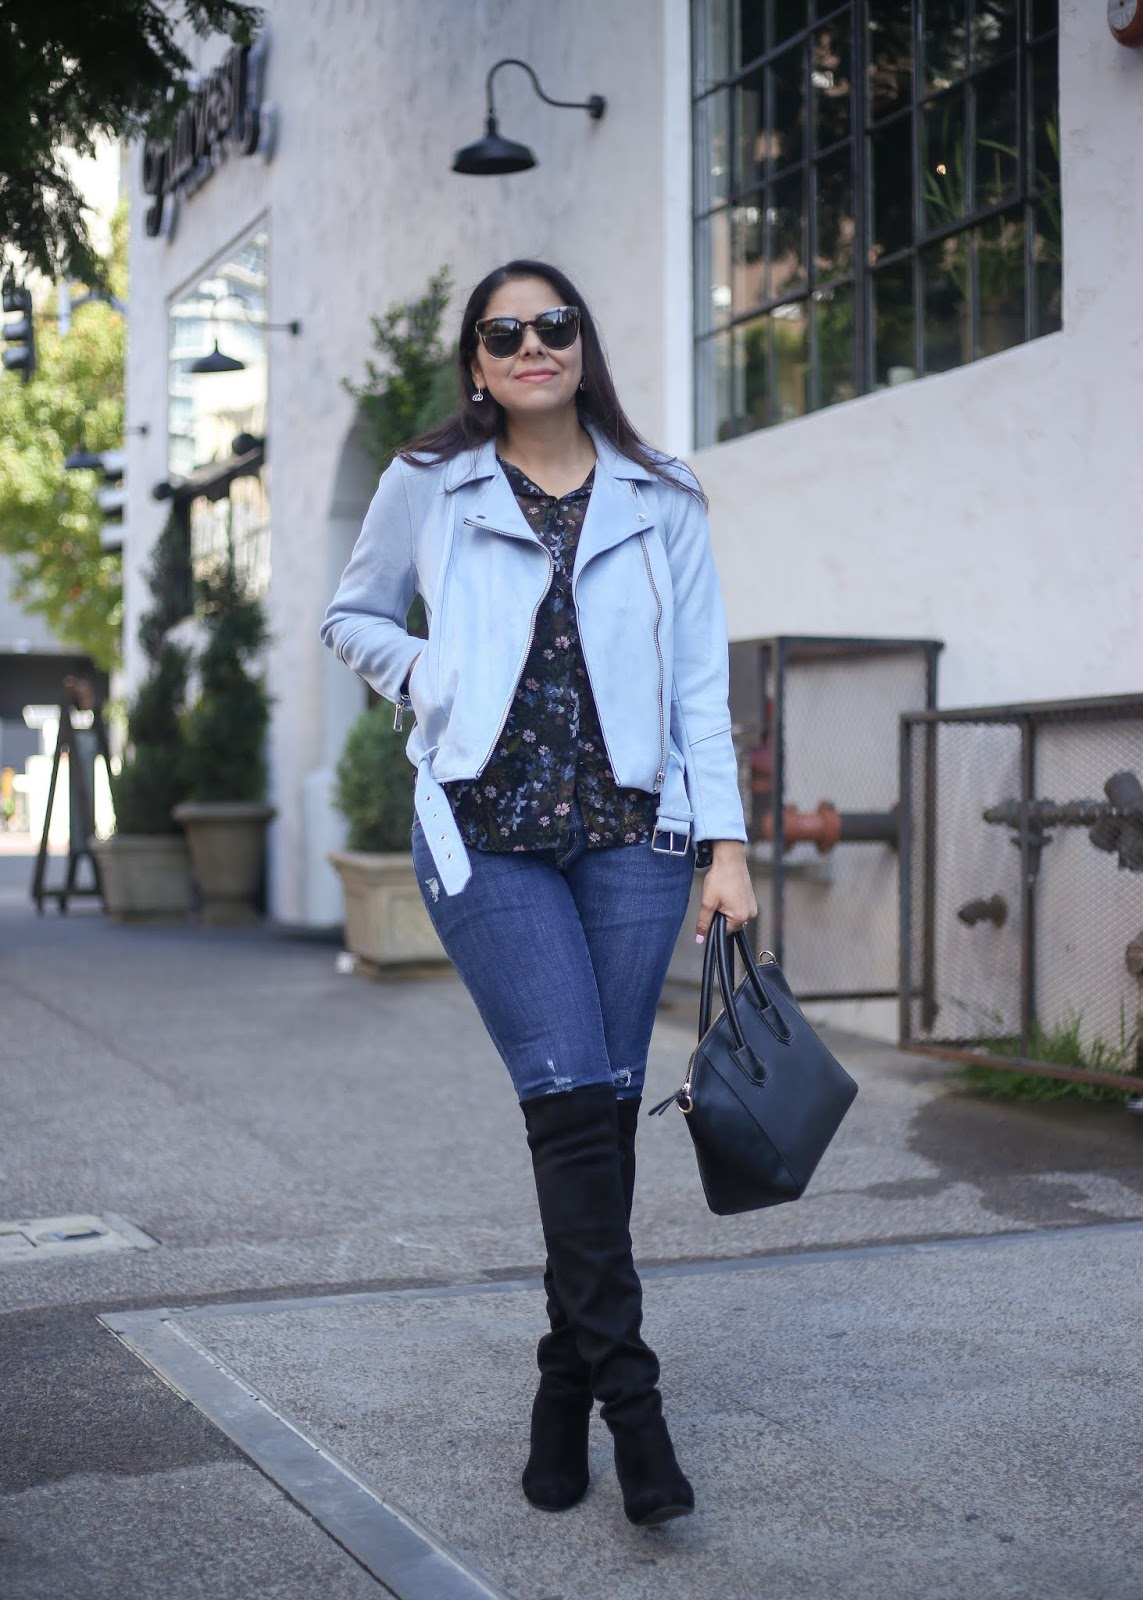 chic moto jacket outfit, paste colored jacket